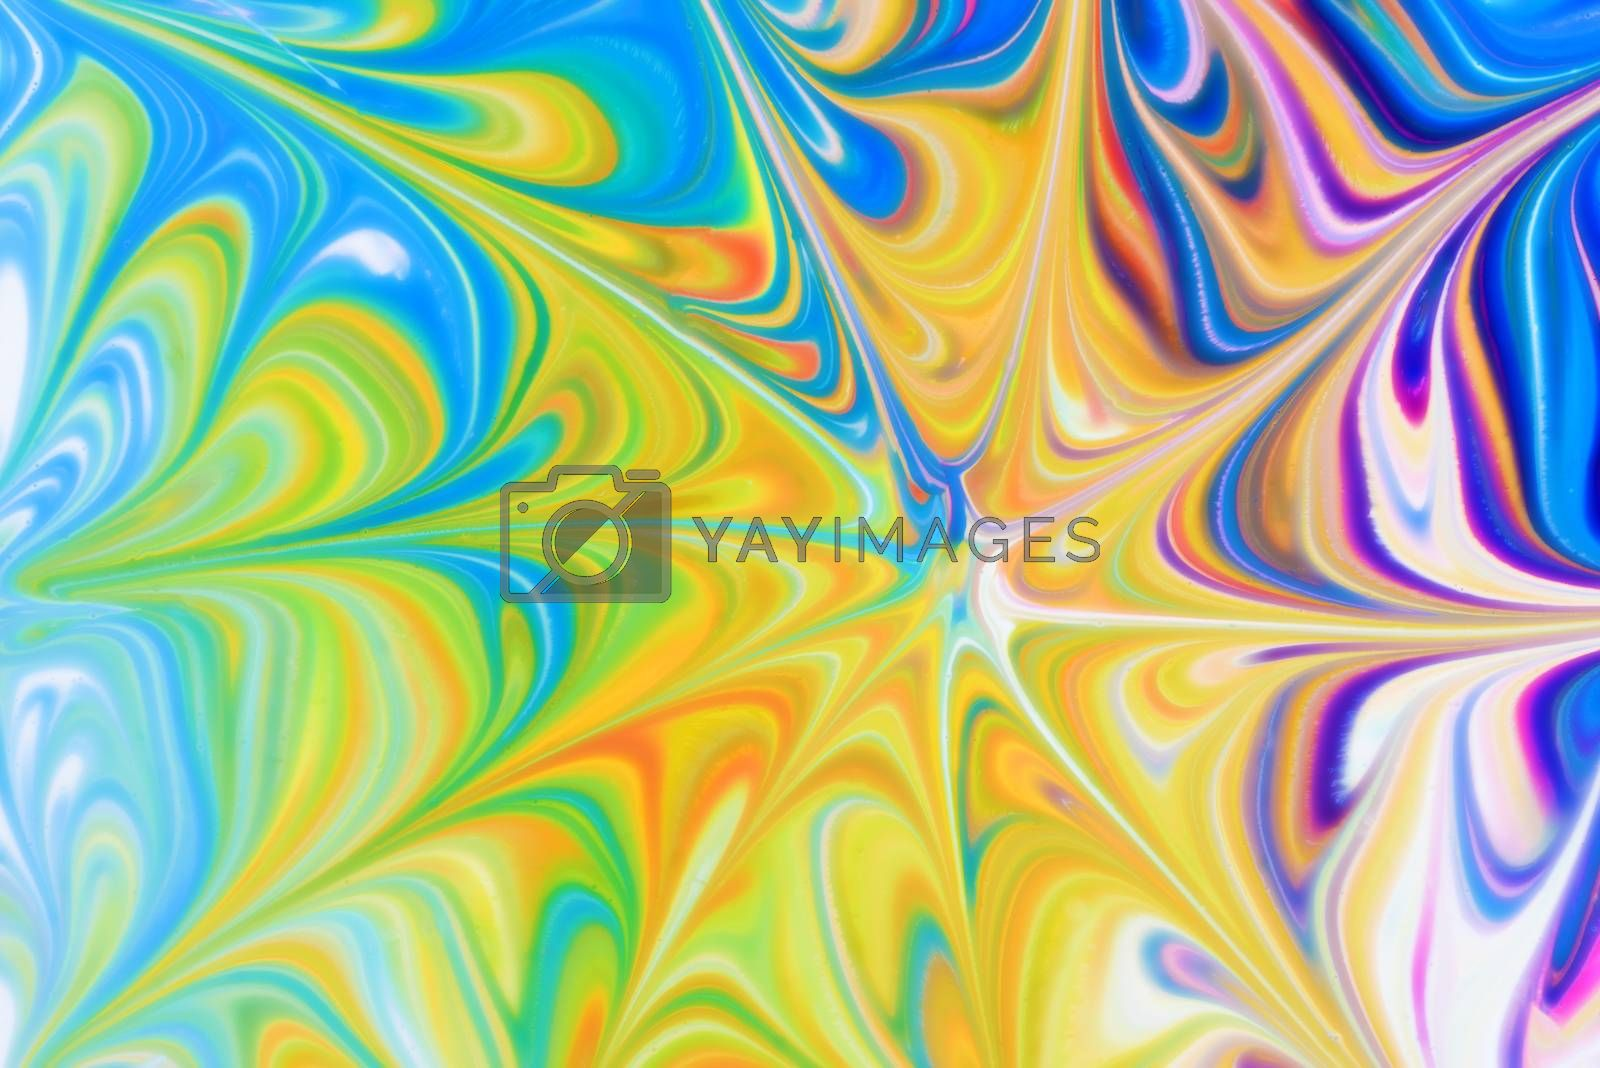 Abstract fluid pattern. Colorful painted background. Decorative marble texture. Soft focus